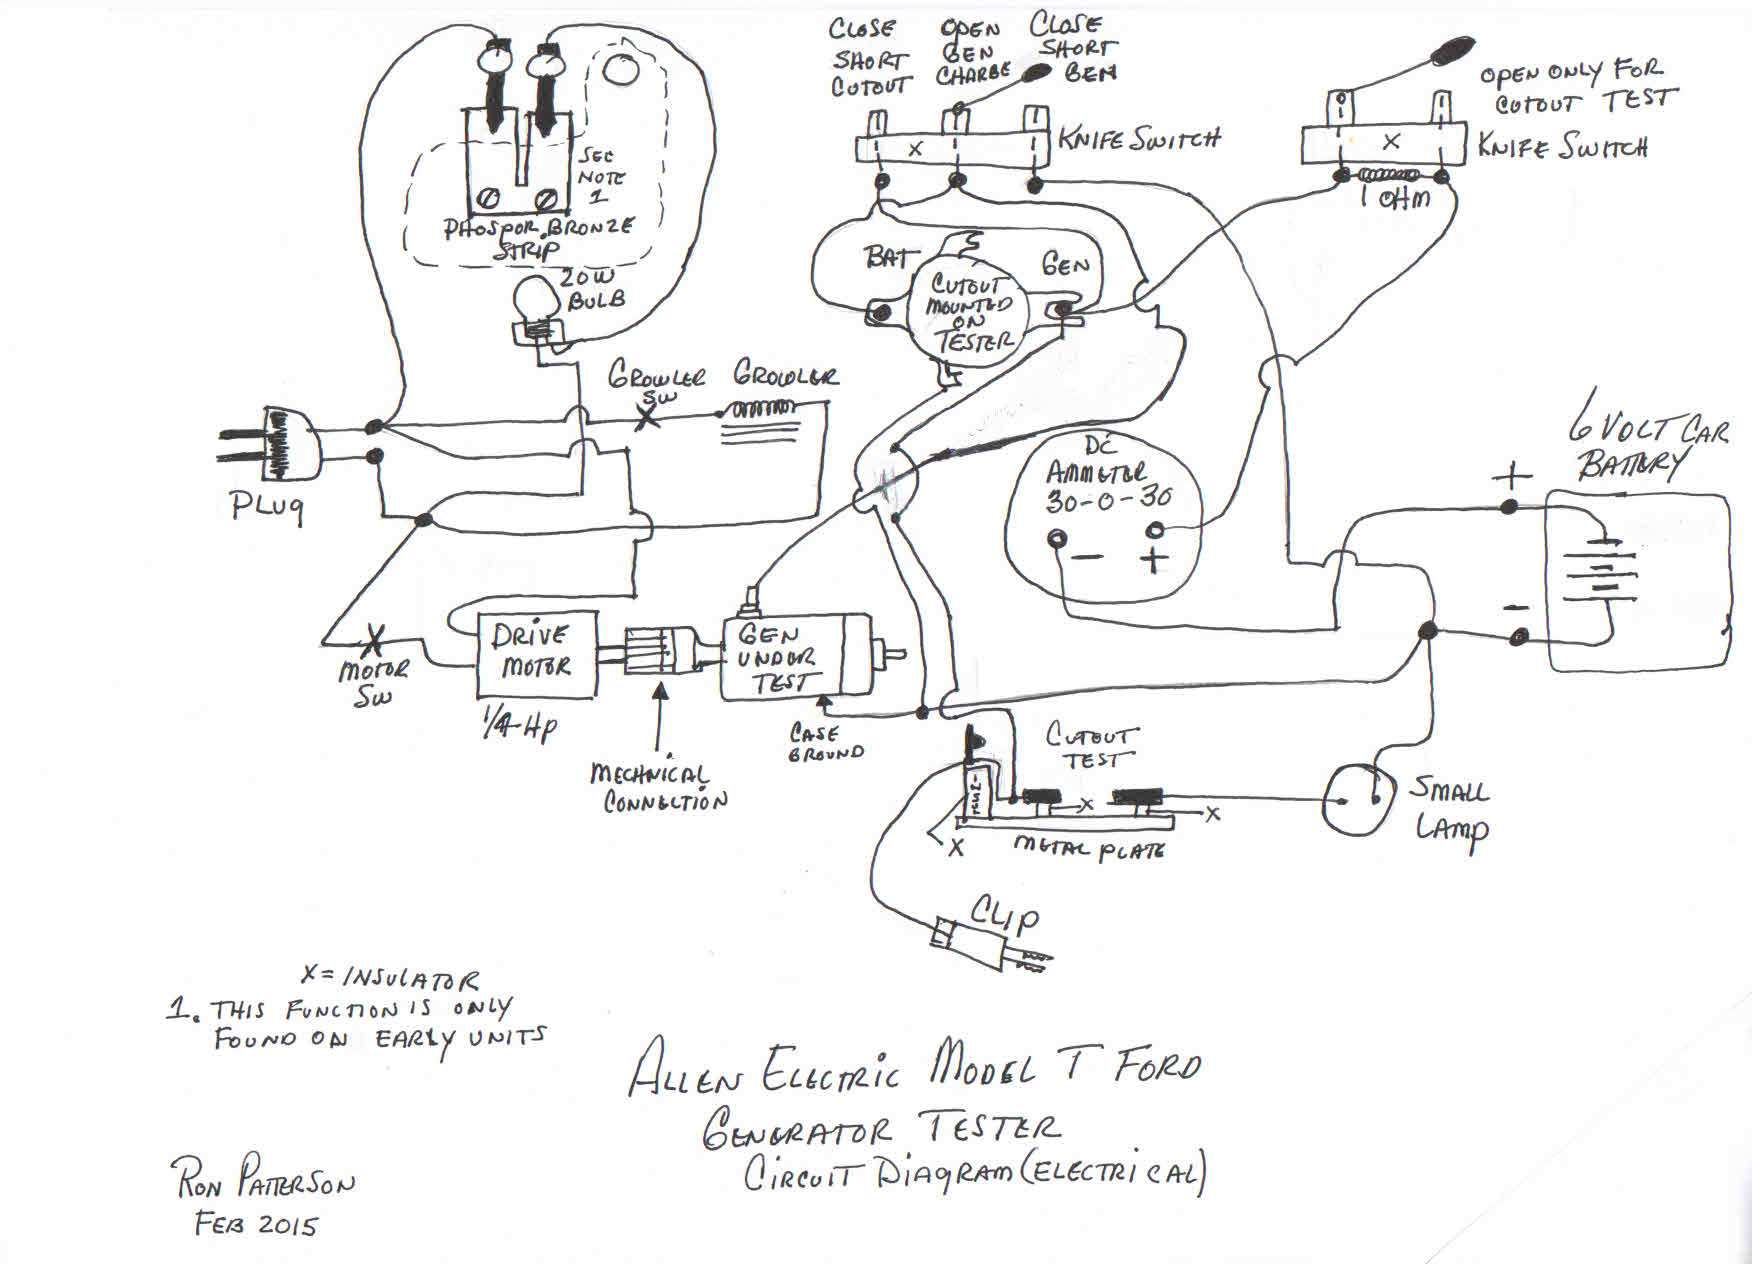 hight resolution of model t ford forum allen electric generator tester wiring